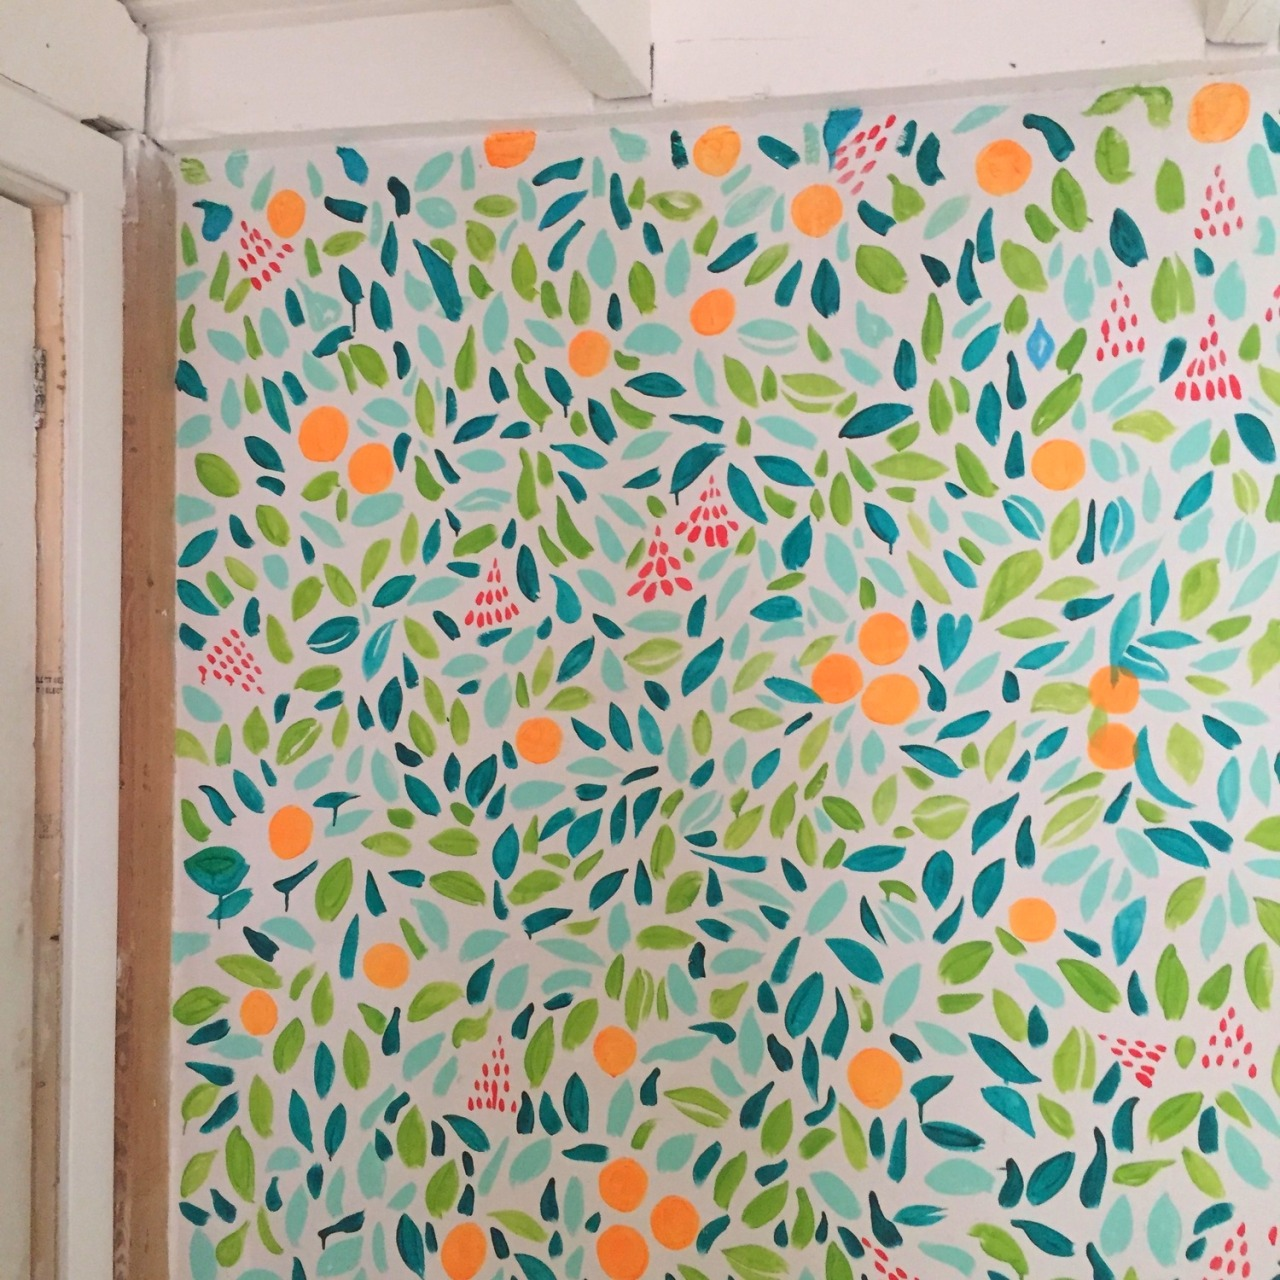 Commission a Mural -